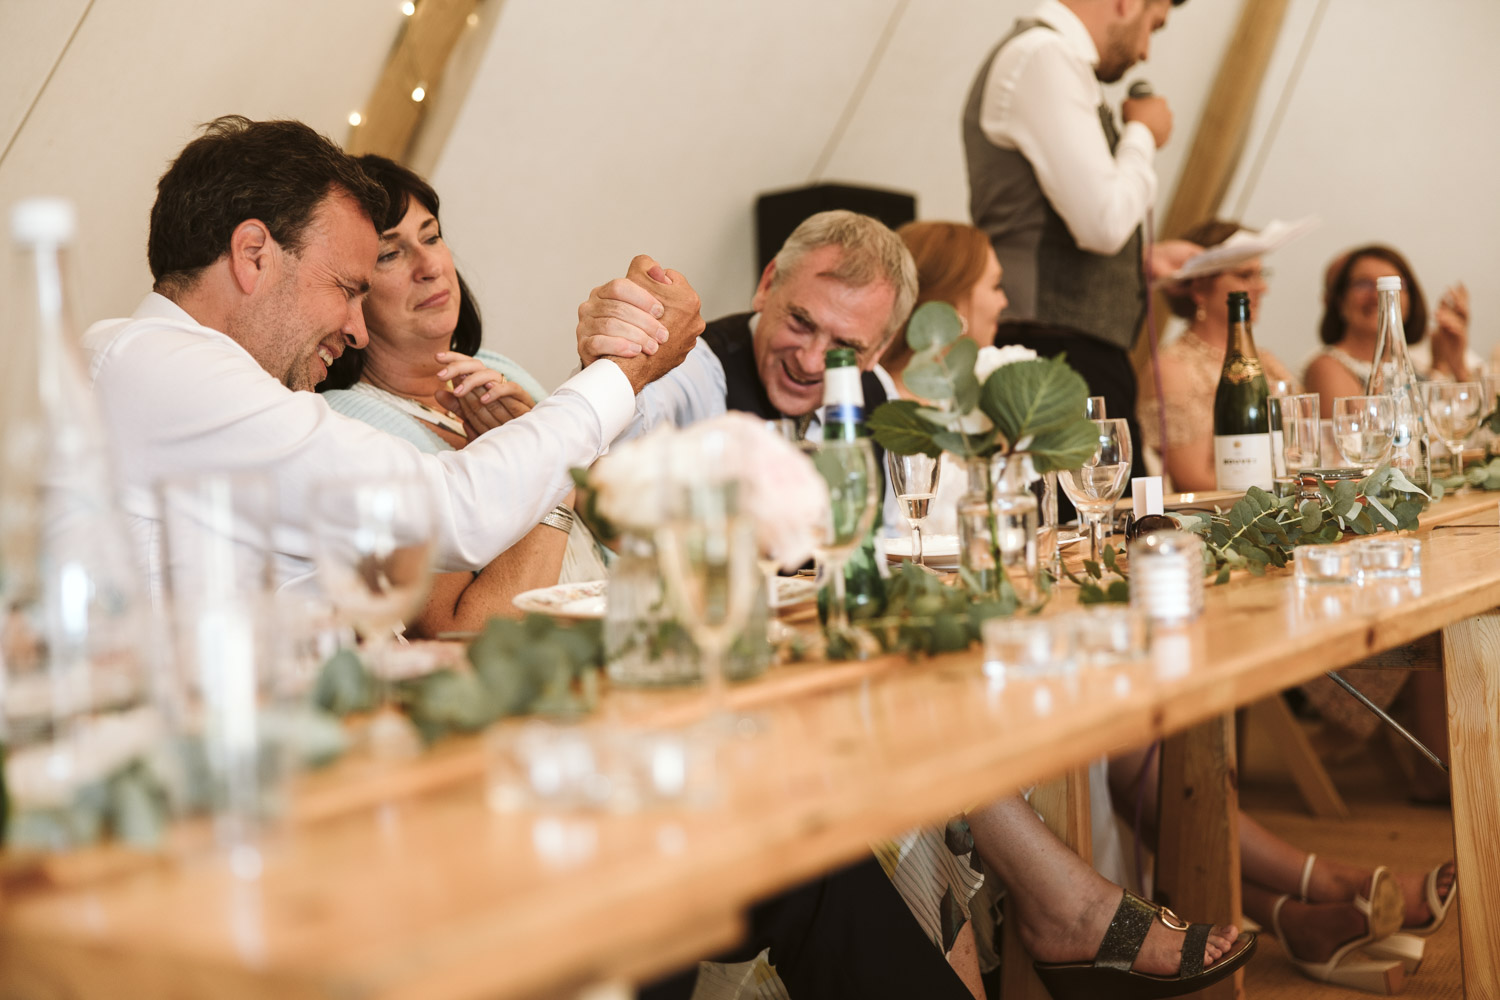 the father of the bride and groom share a fist pump